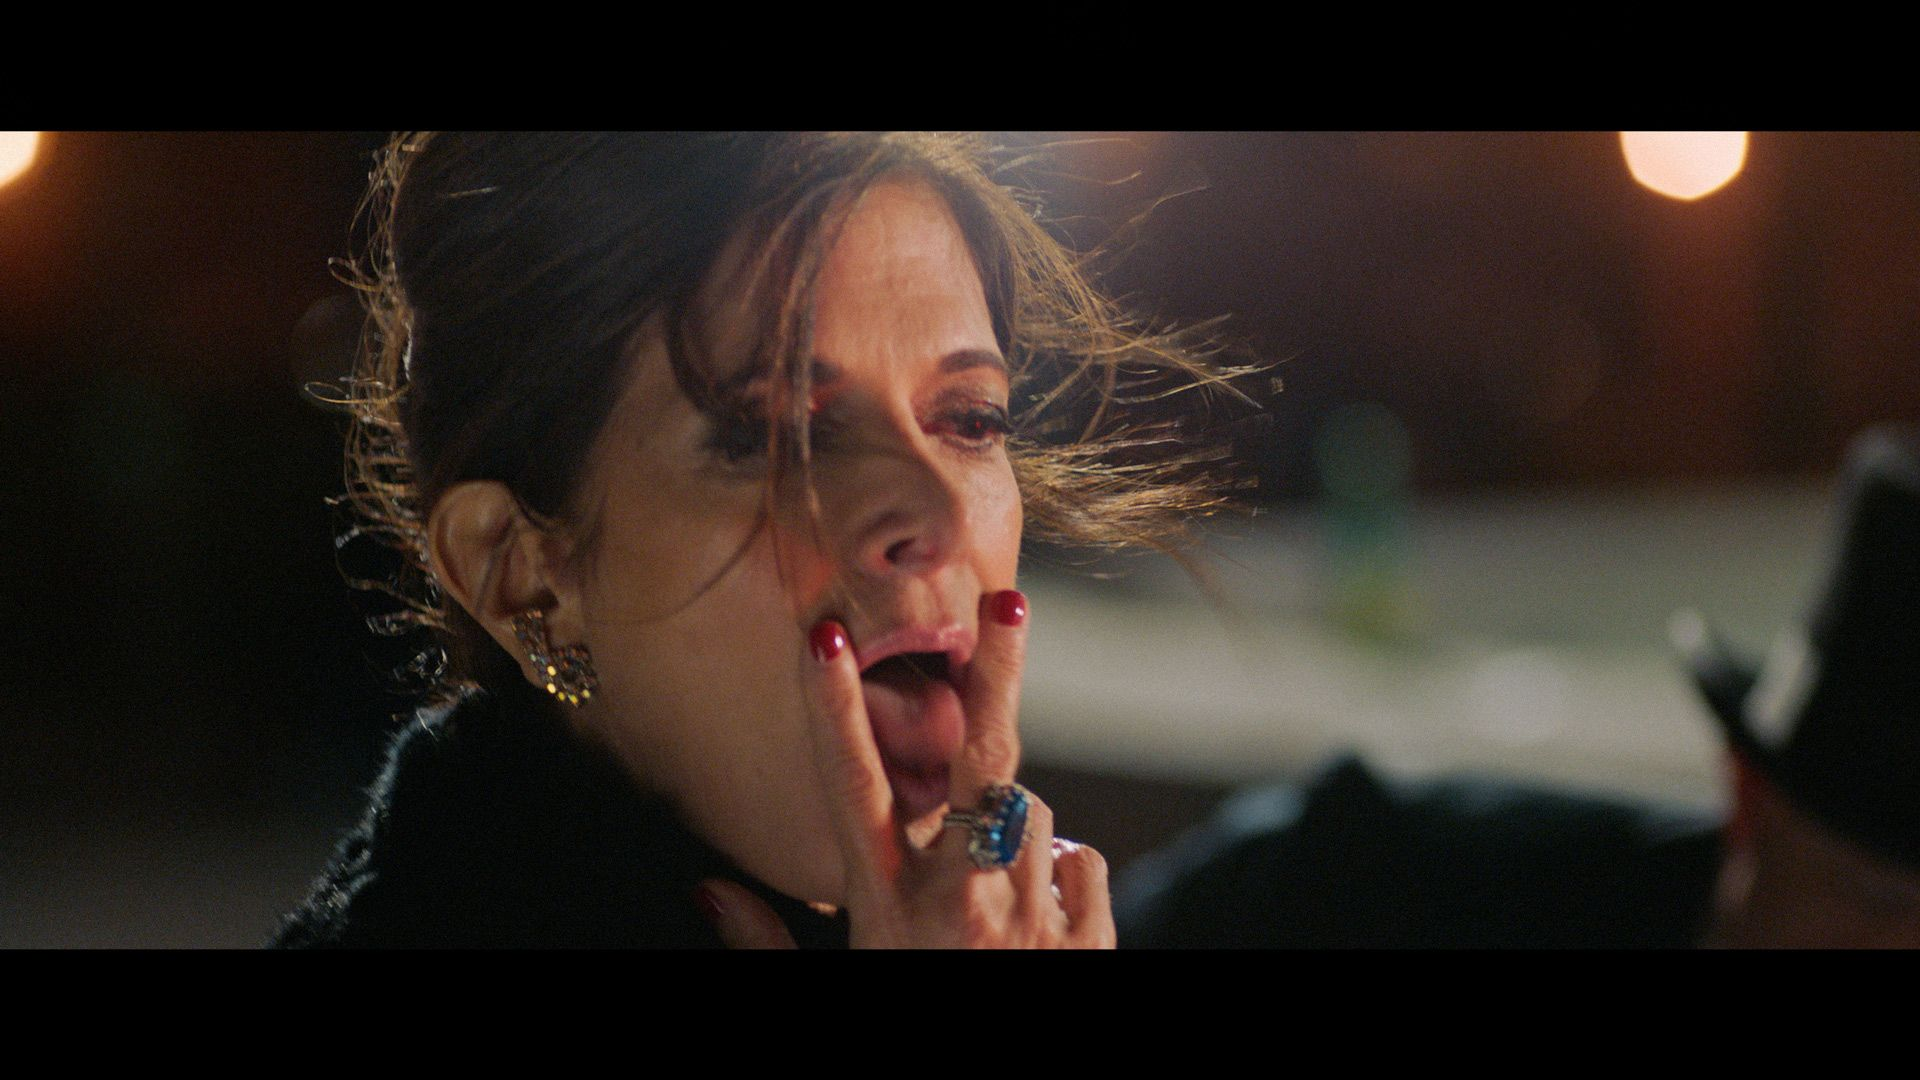 actress forming V with her fingers and sticking her tongue in between them with her hair in the wind for TV series La Loi C'est La Loi filmed by Les Gamins for TV5 Unis